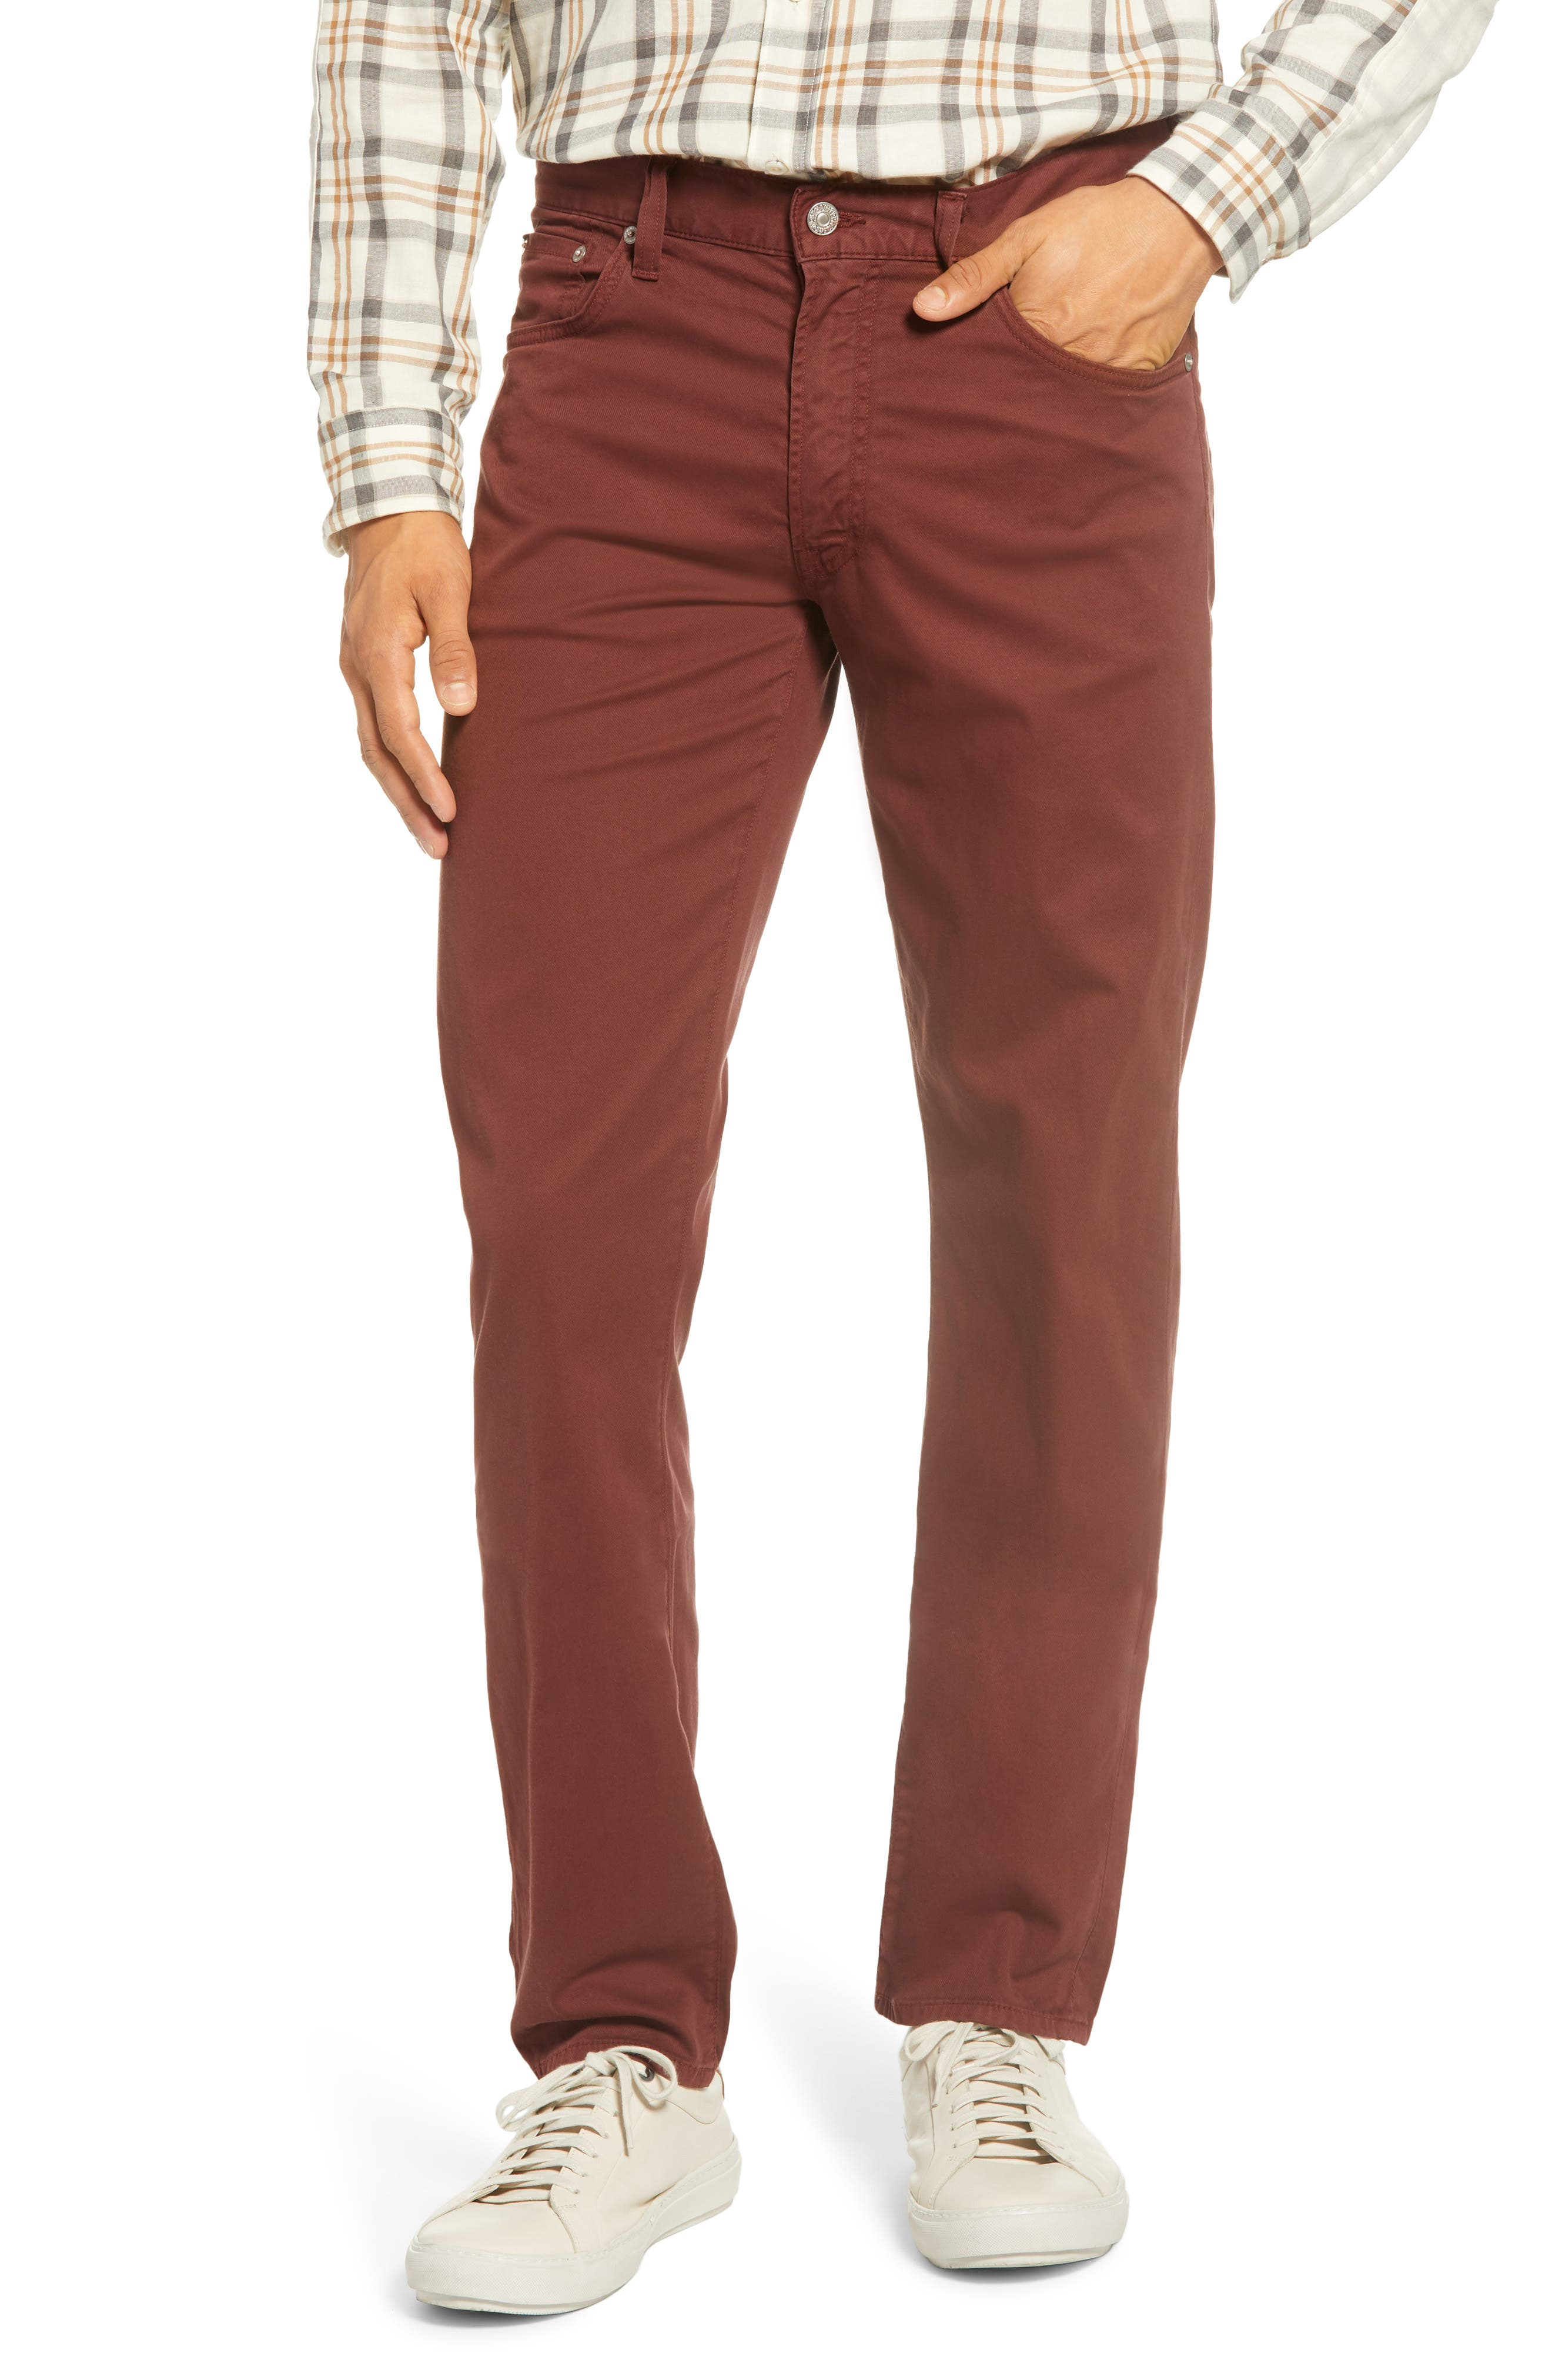 Image of Citizens Of Humanity Luxury Bowery Slim Fit Twill Pants